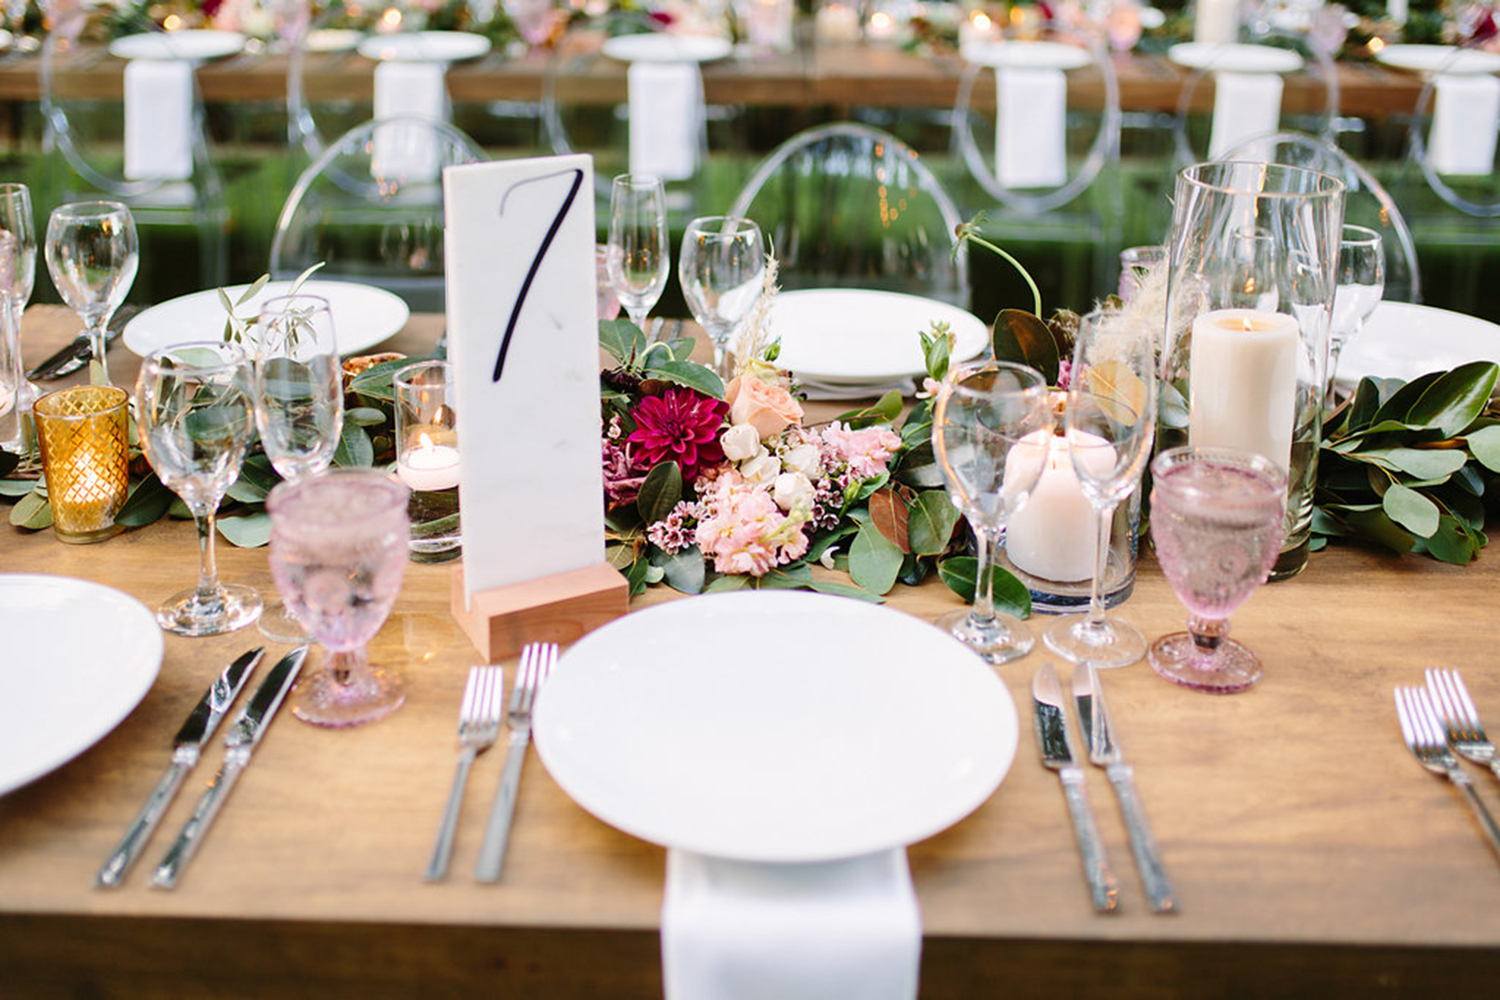 Marble table number at wedding place setting